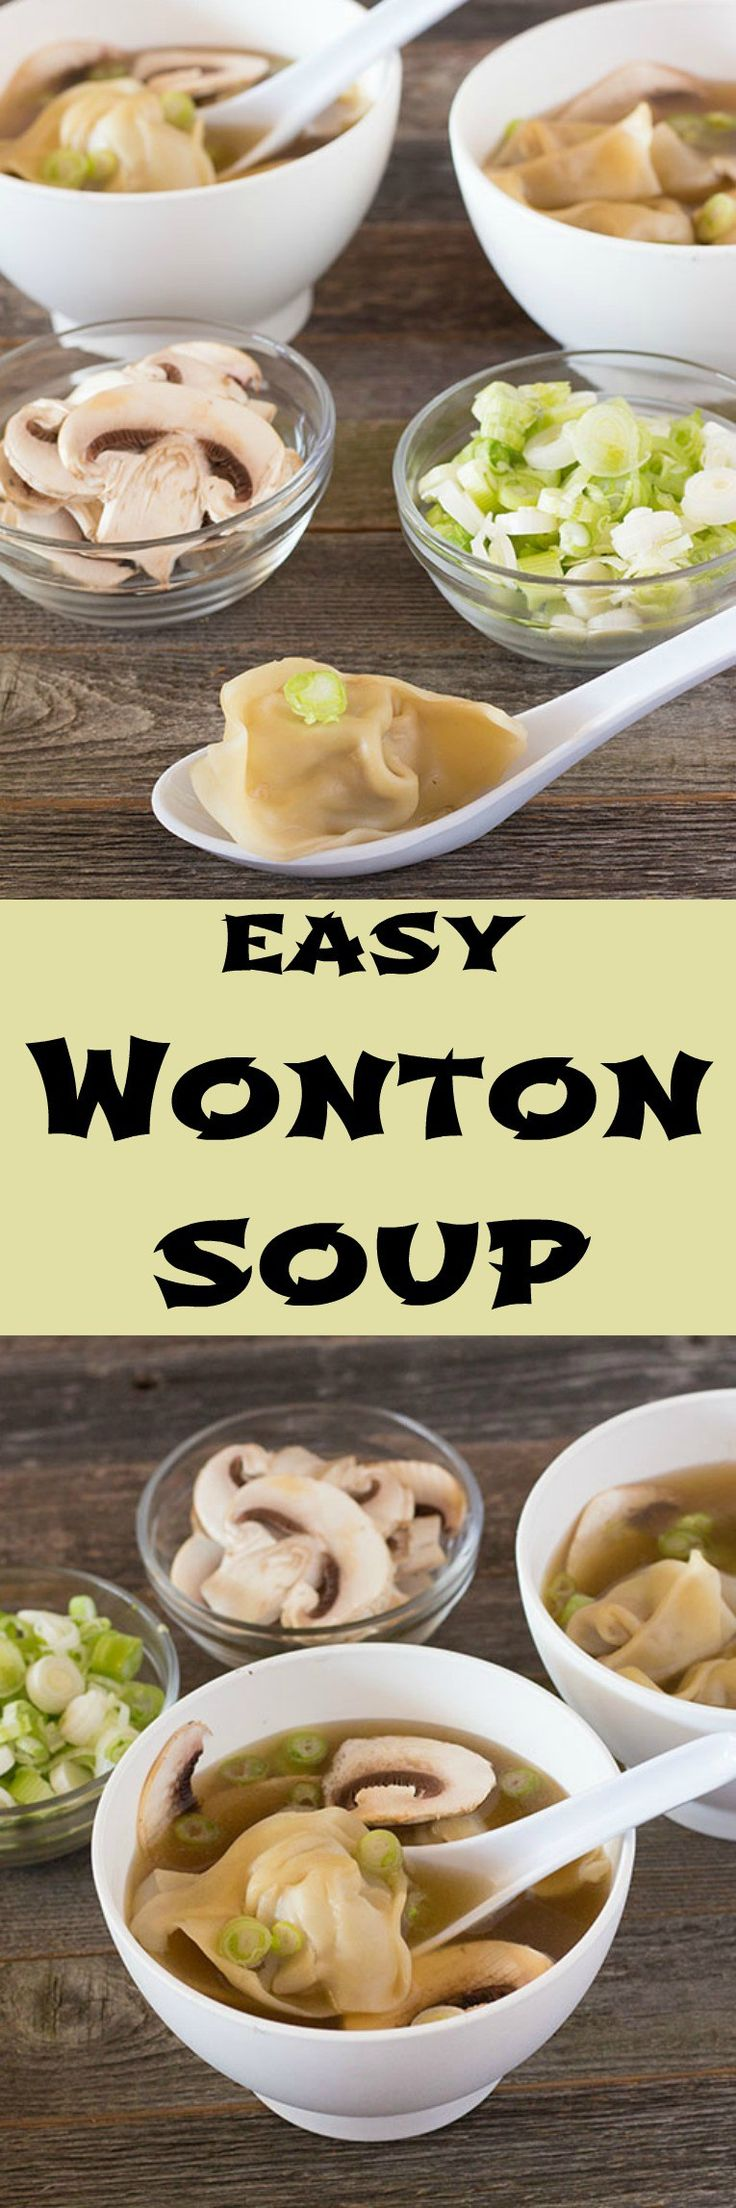 Homemade wontons simmered in rich chicken broth. No need for carry out with this recipe.